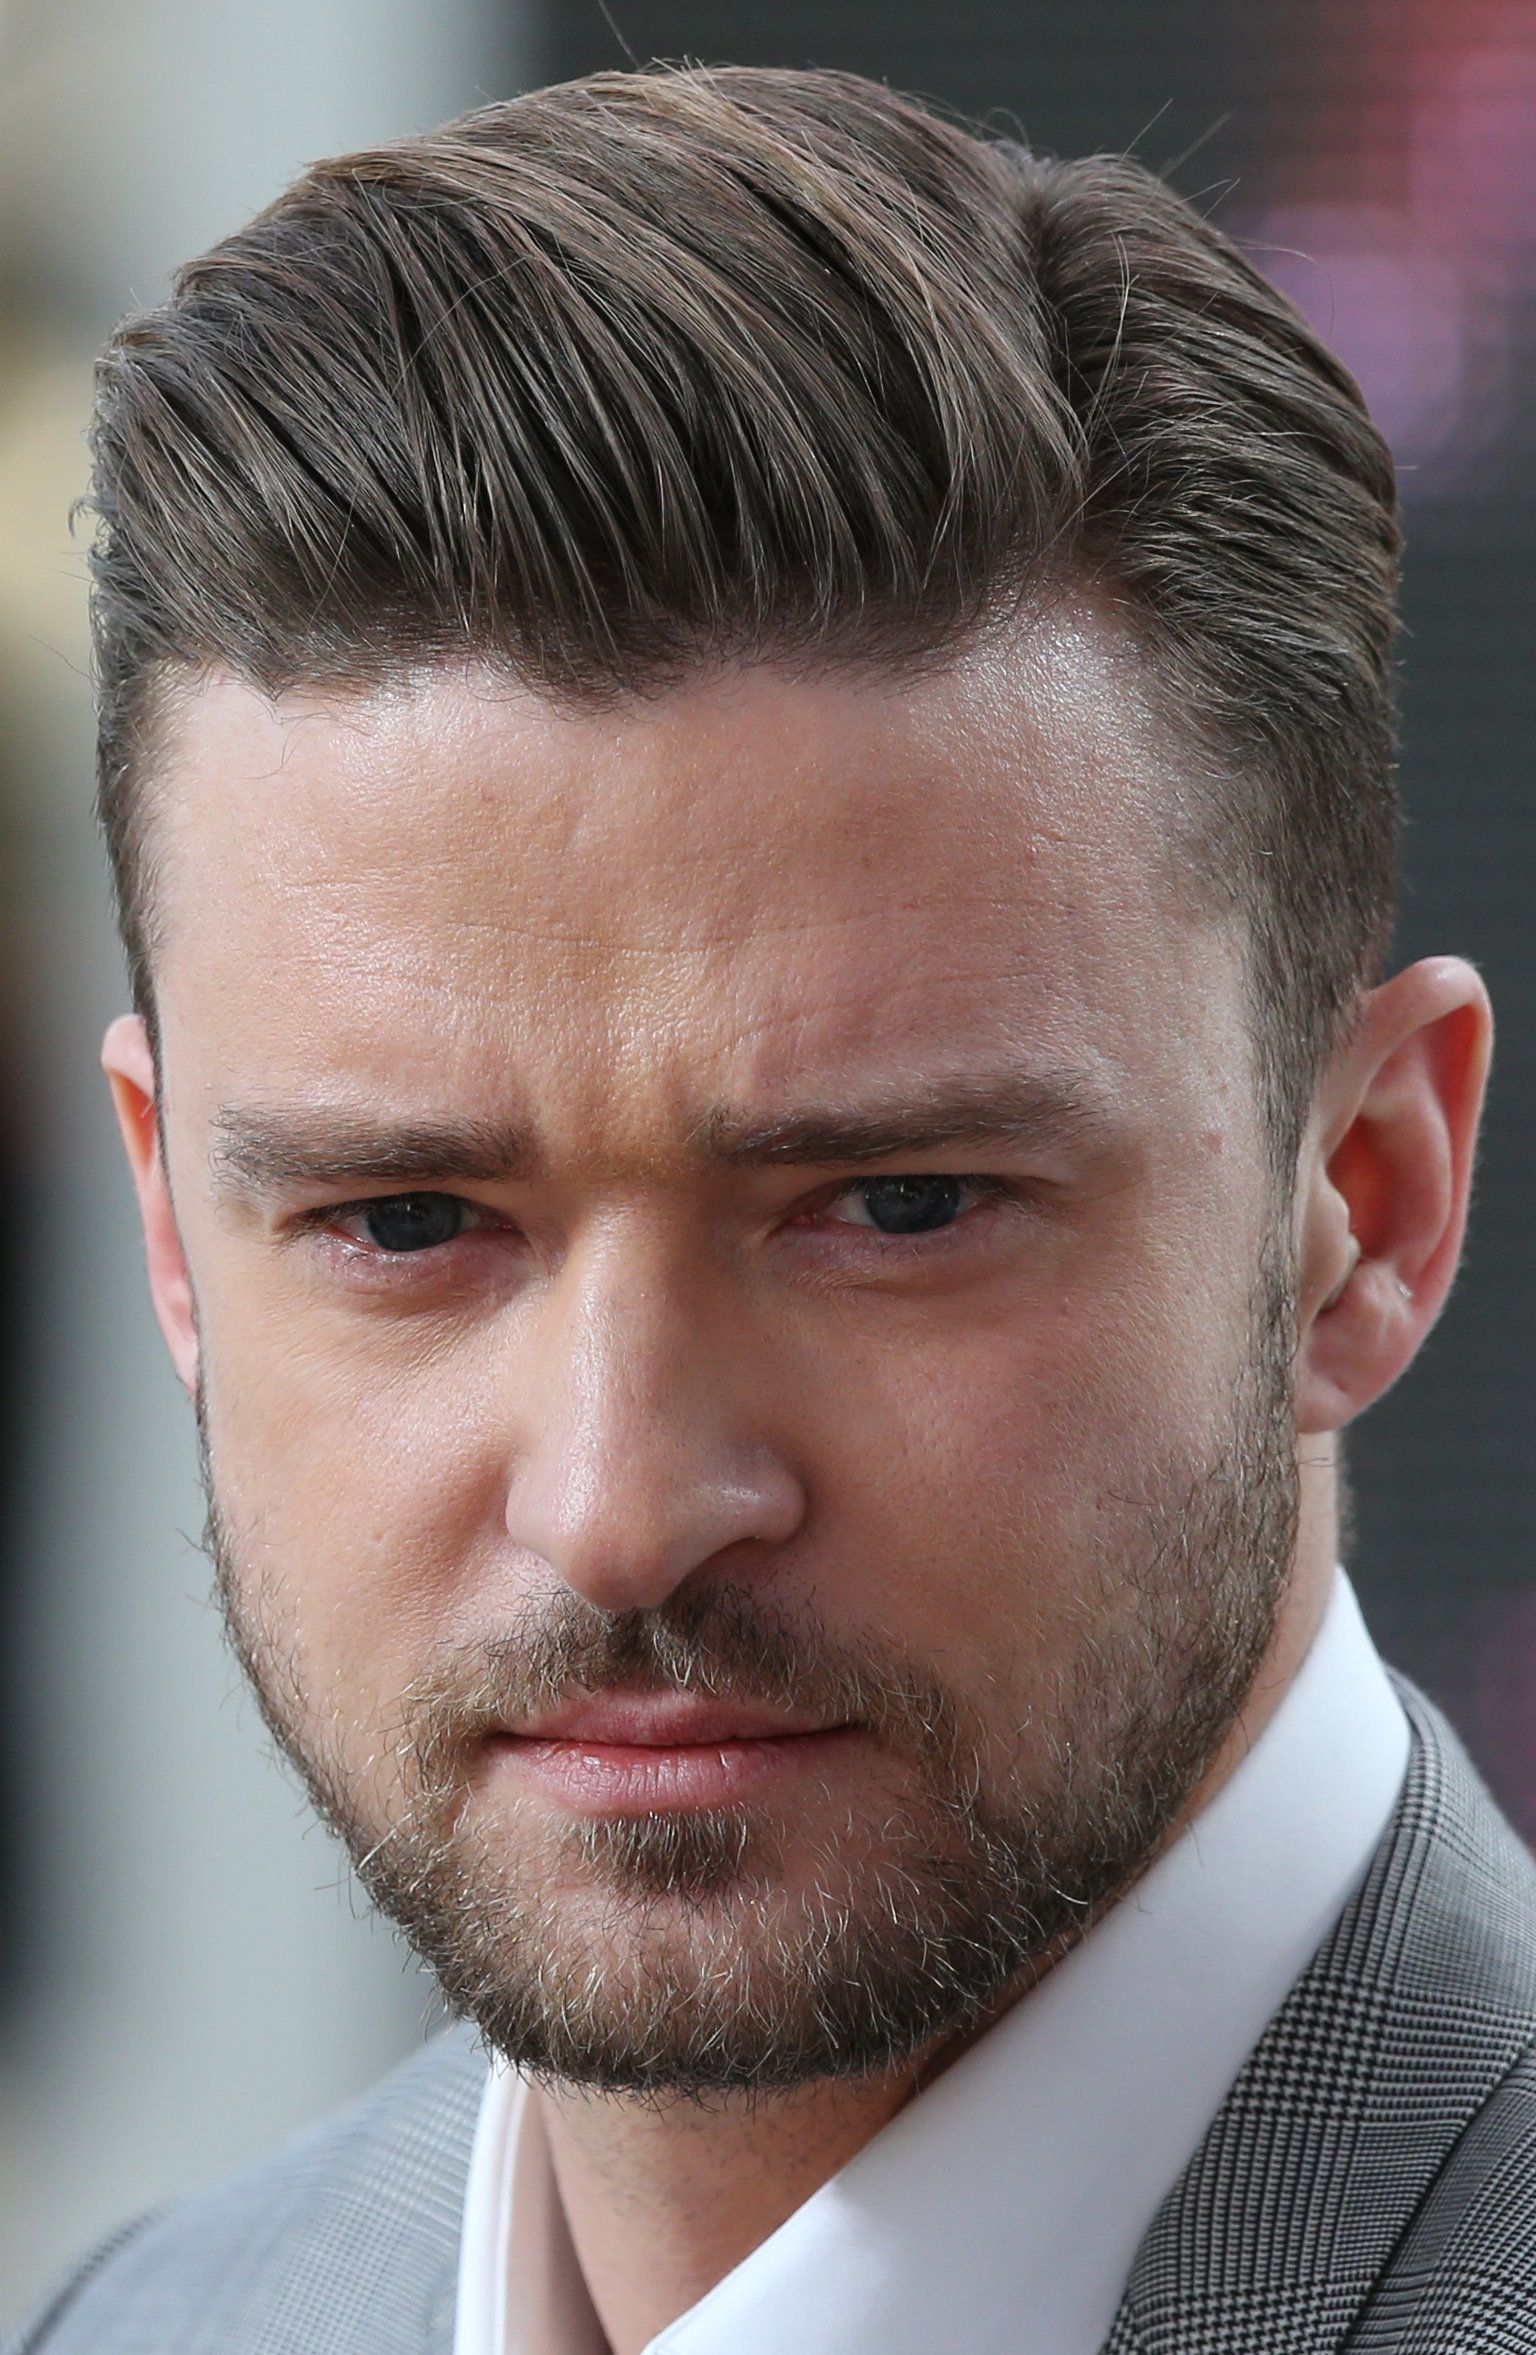 Show These Short Men's Hairstyles To Your Barber | HuffPost